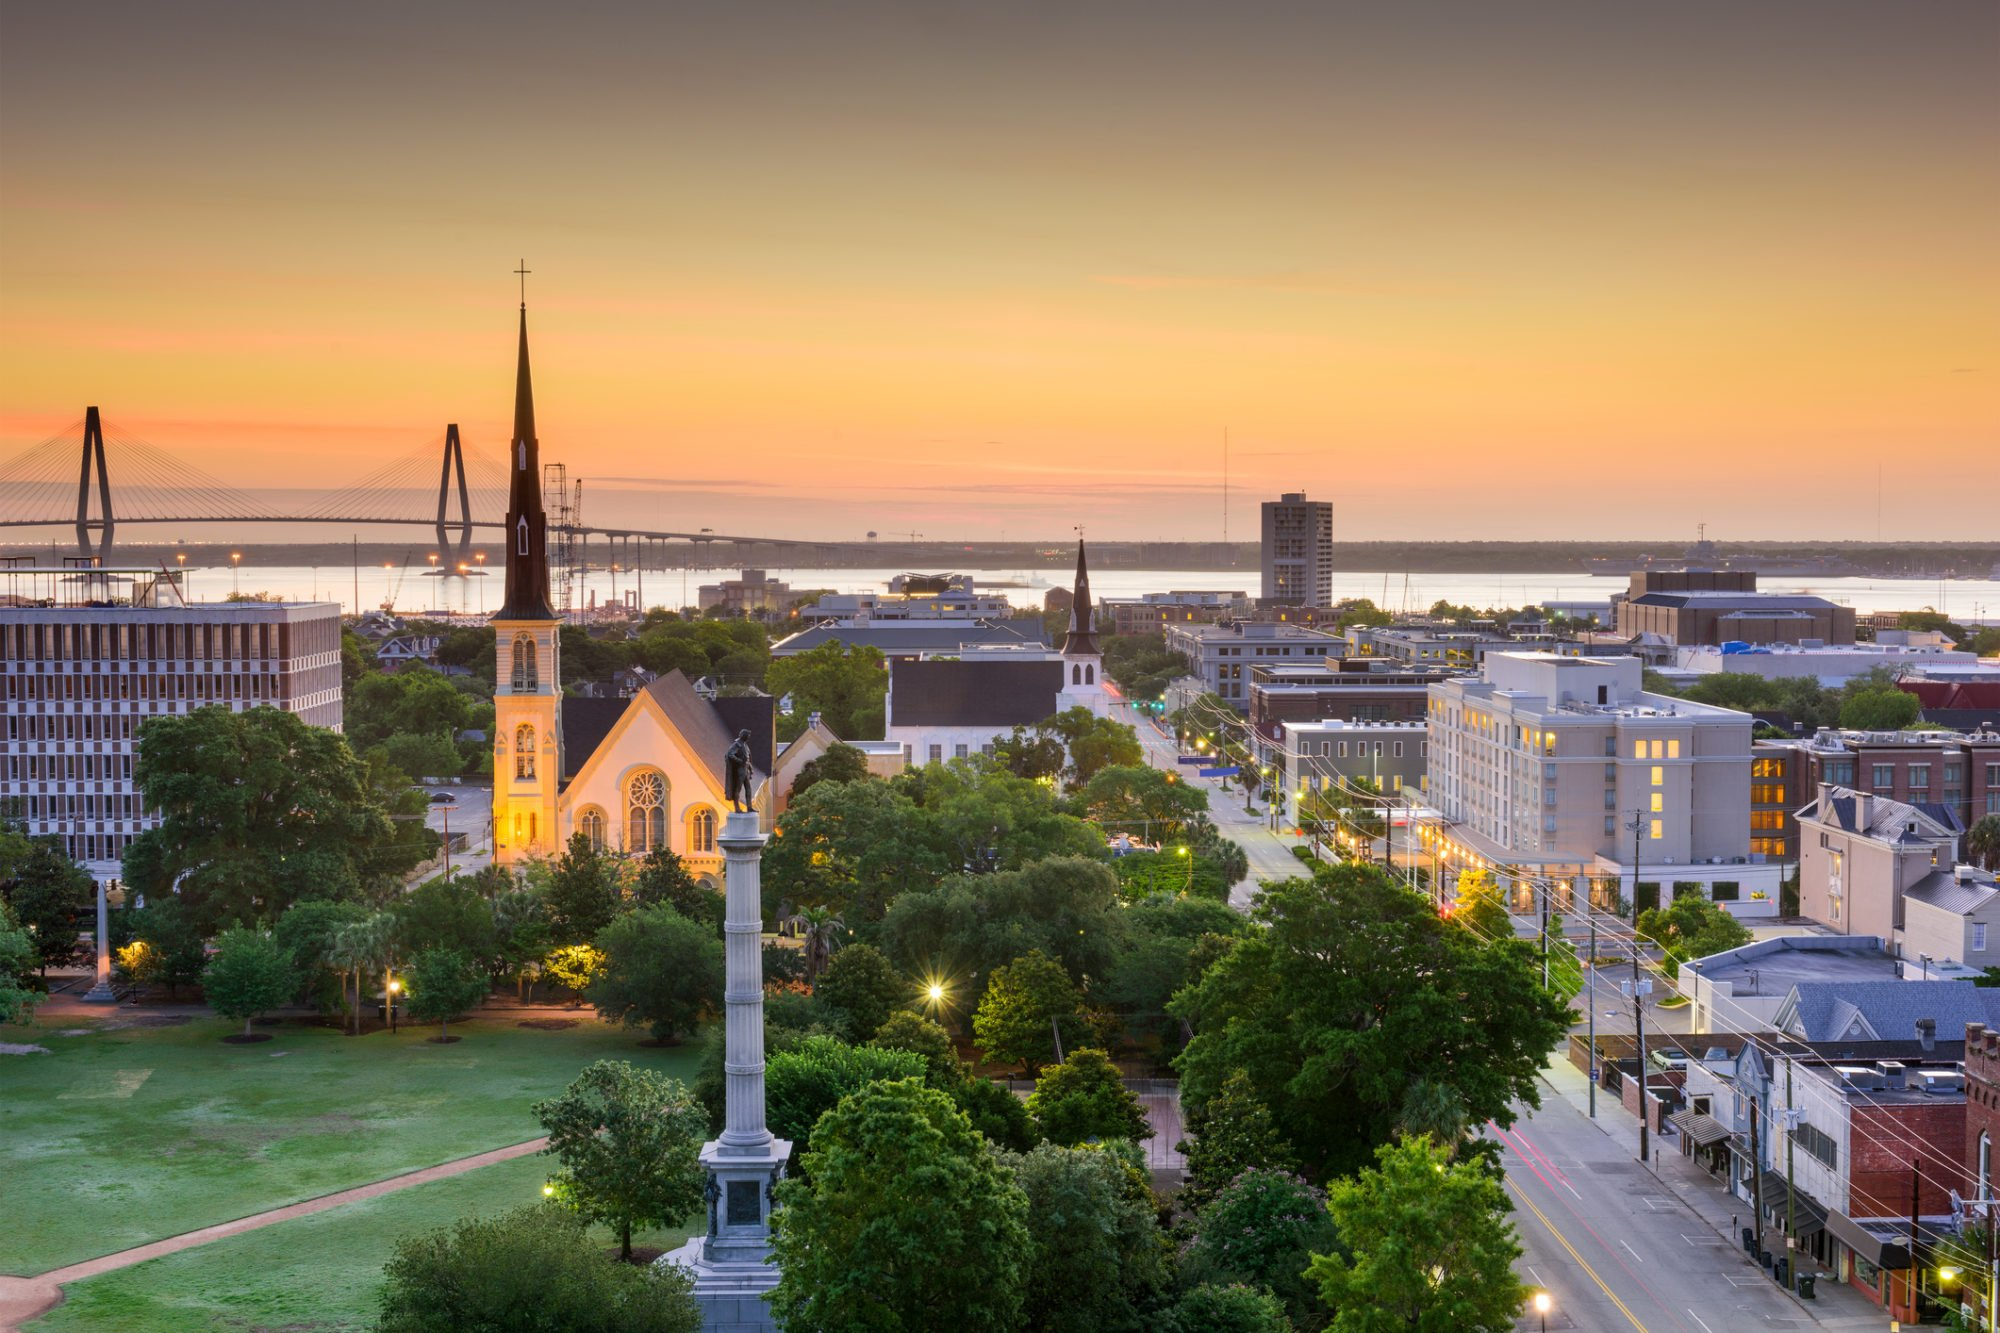 FITSNews – The Jamal Sutherland Case: Charleston, South Carolina Is About To Erupt